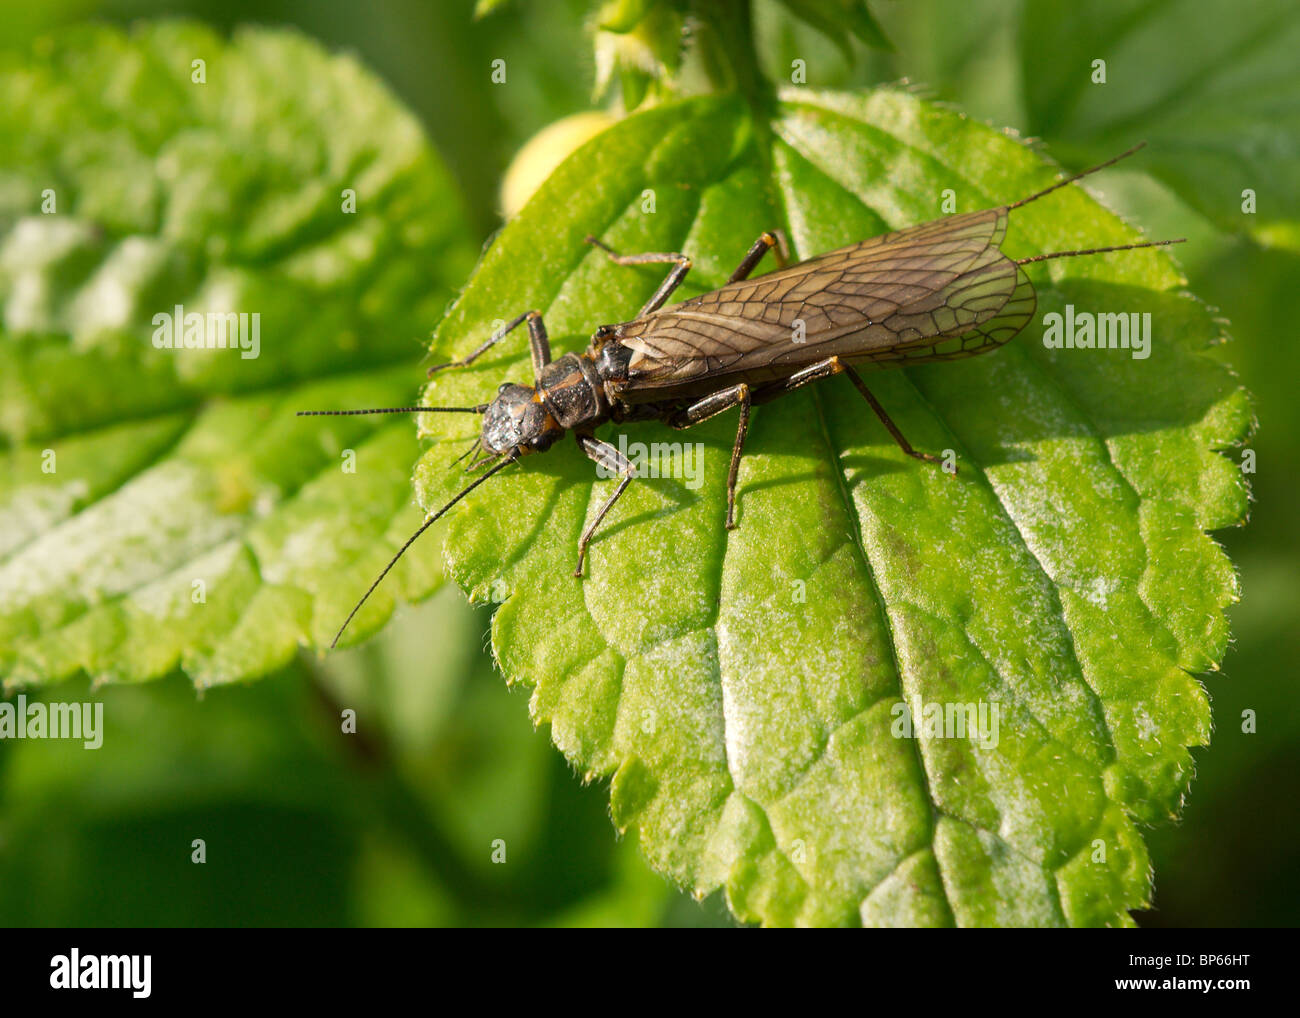 Stonefly, Perlodes microcephala, photographed at the River Brock in Lancashire Insect wildlife nature - Stock Image